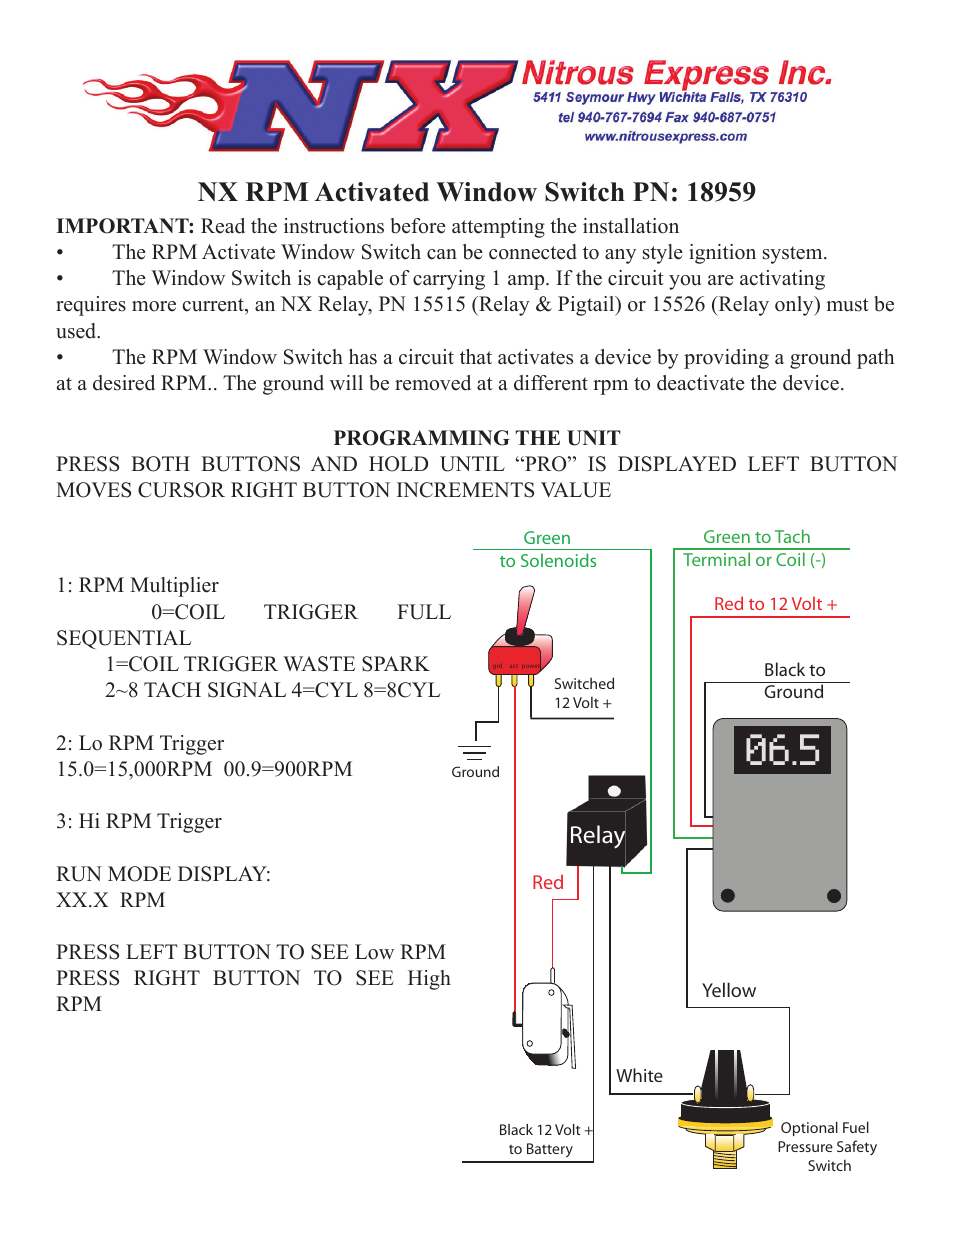 Nitrous Express NX RPM ACTIVATED WINDOW SWICH (18959) User ... on relay wiring diagram, lock actuator wiring diagram, slave cylinder wiring diagram, sensor wiring diagram, power window switch diagram, window switch volvo, window ac wiring diagram, ignition module wiring diagram, heater motor wiring diagram, window fan wiring diagram, fan clutch wiring diagram, gm power window wiring diagram, ignition coil wiring diagram, air ride compressor wiring diagram, 91 jeep cherokee wiring diagram, starter wiring diagram, a/c compressor wiring diagram, transmission wiring diagram, backup light wiring diagram, battery wiring diagram,